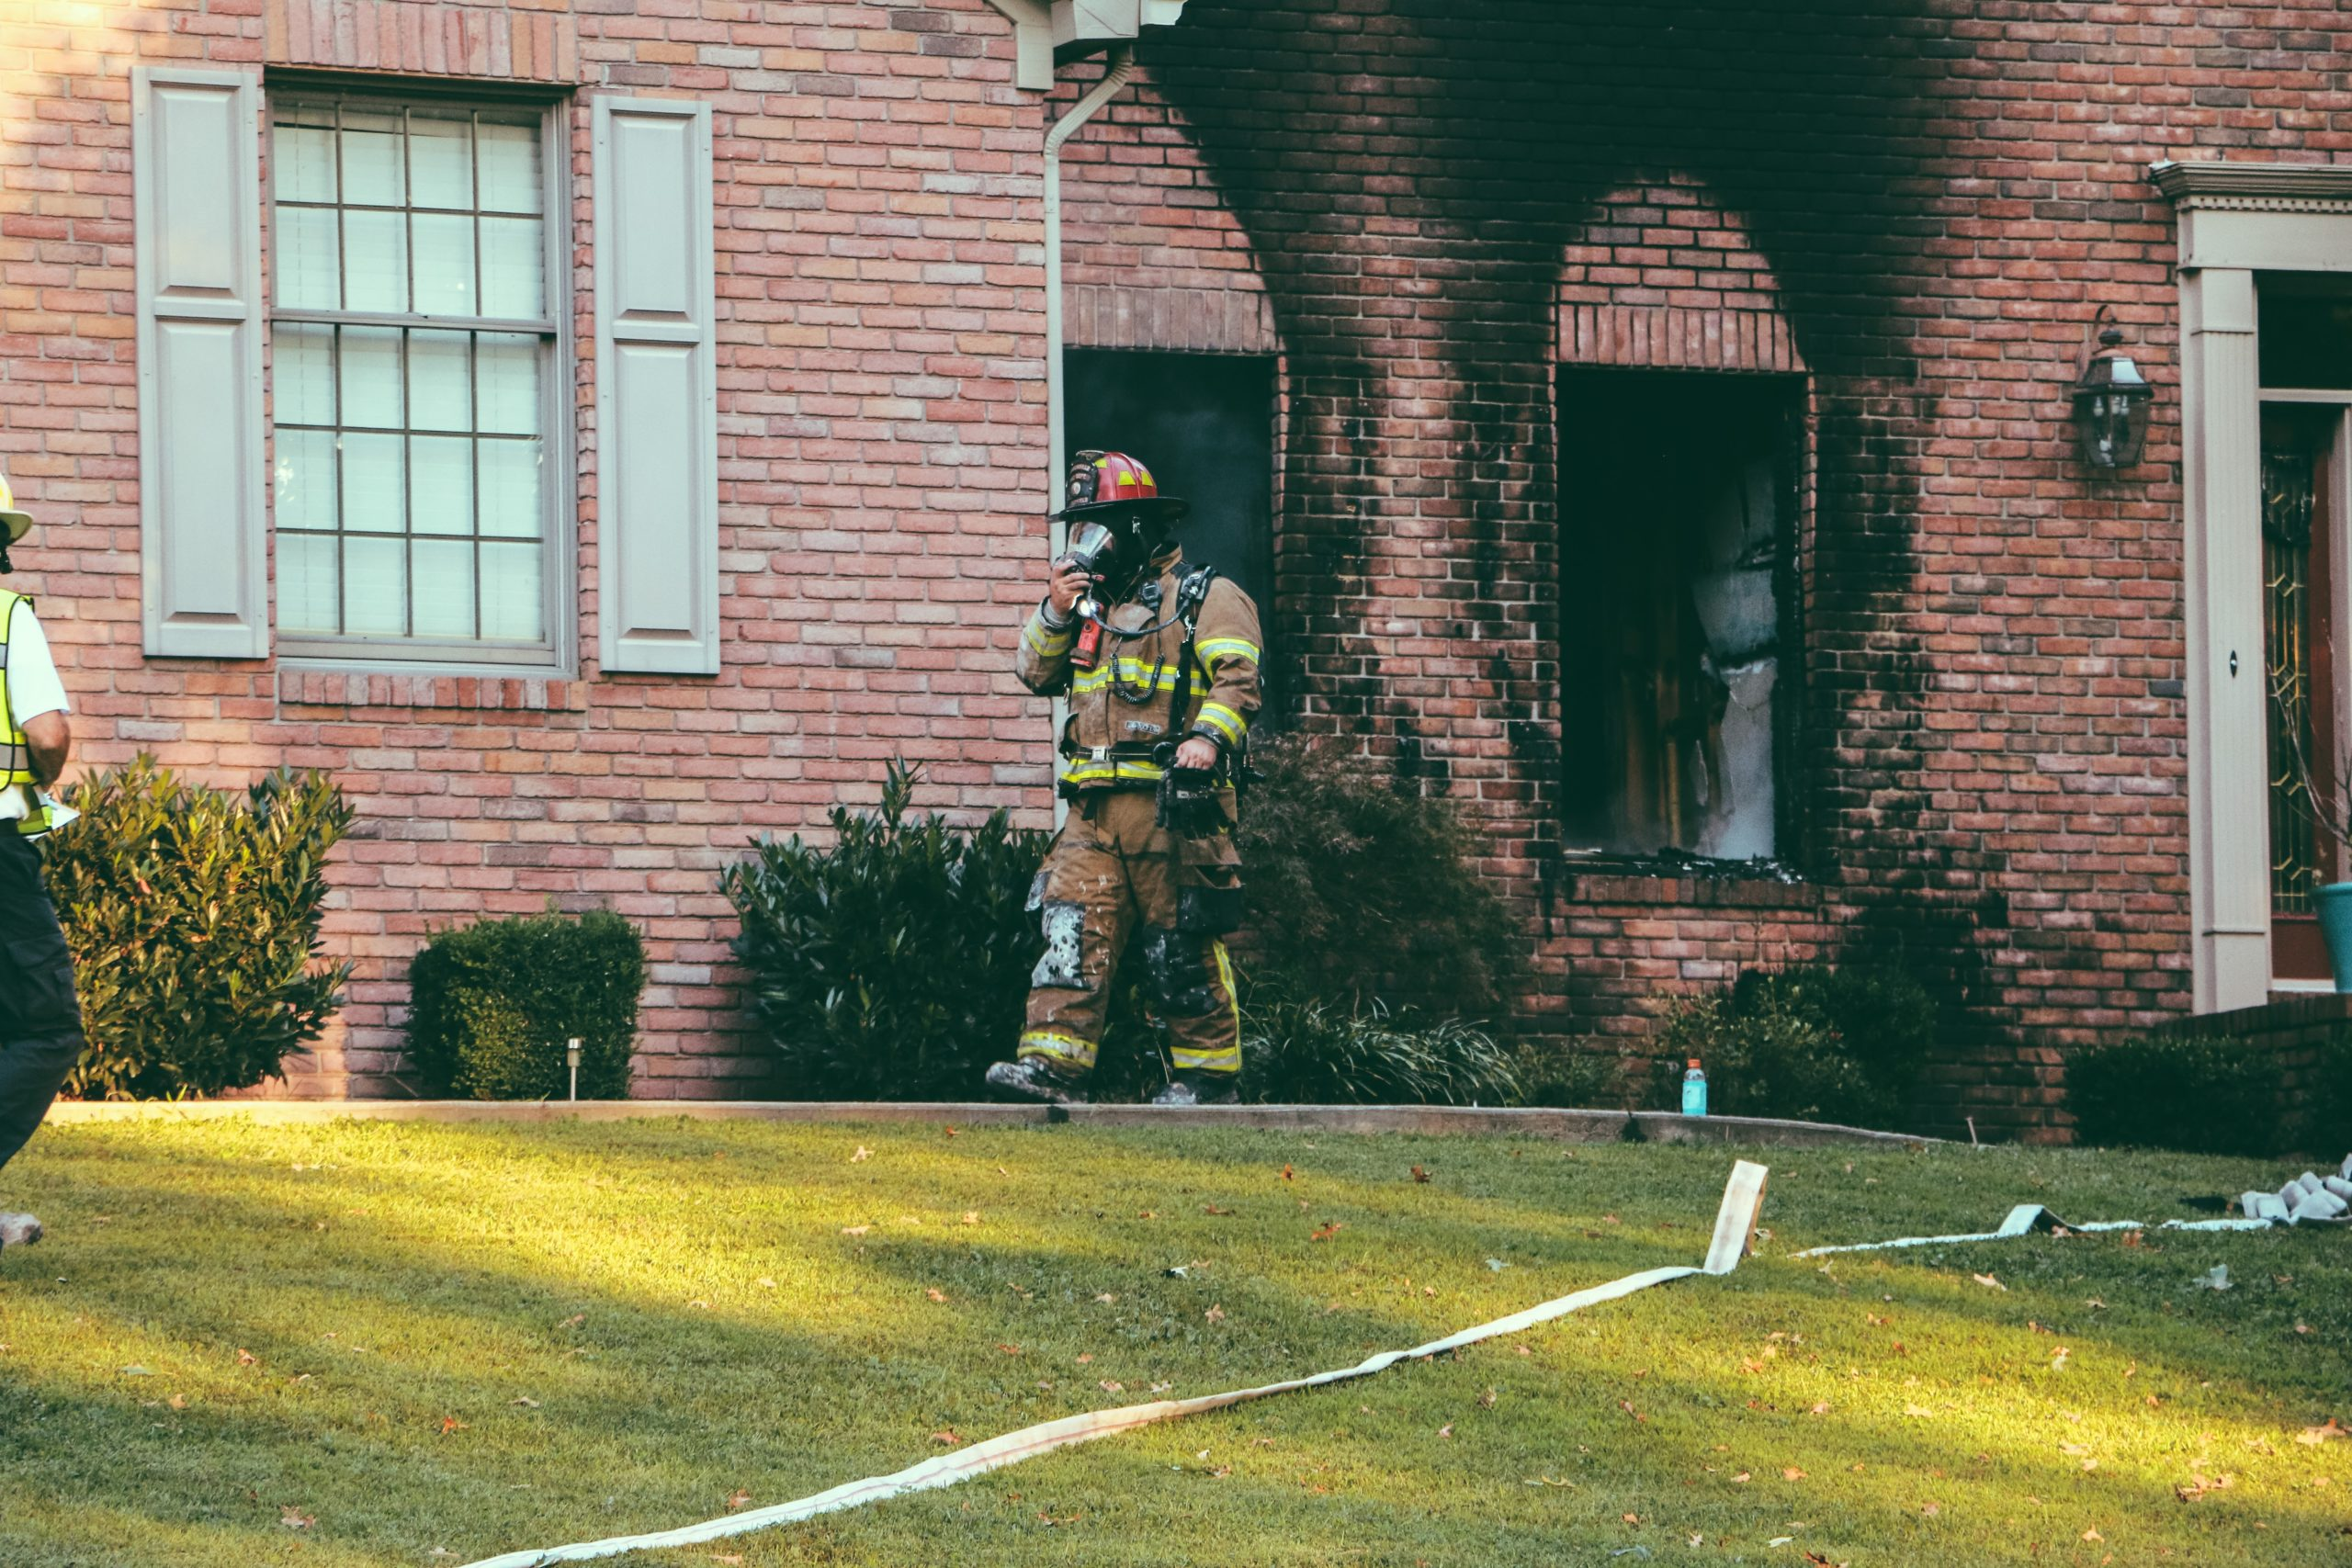 Firefighter walking away from scorched brick building